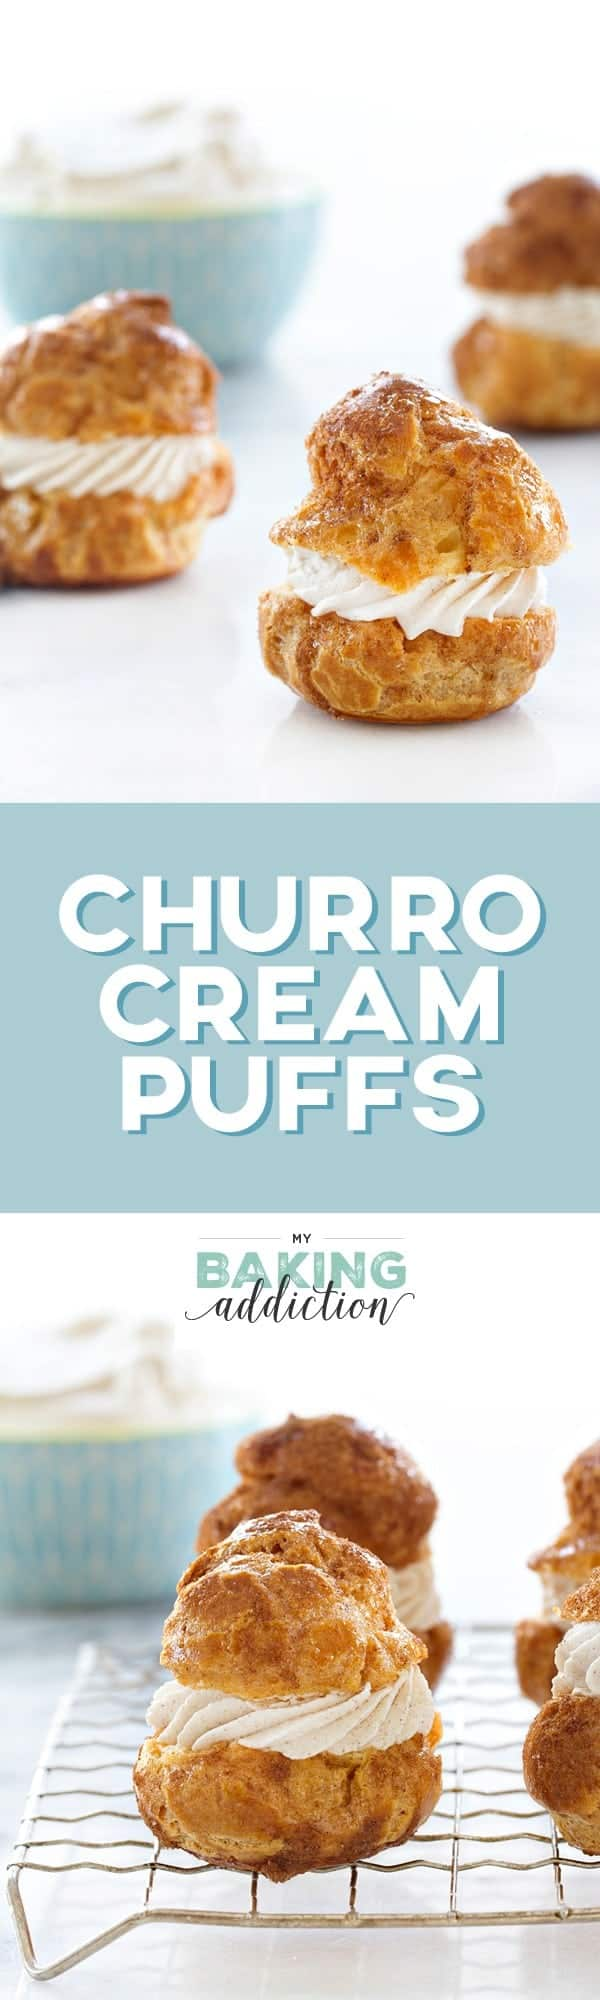 Churro Cream Puffs are filled cinnamon and sugar sweetness you'll crave. The cinnamon whipped cream takes them over the top. A must-make!